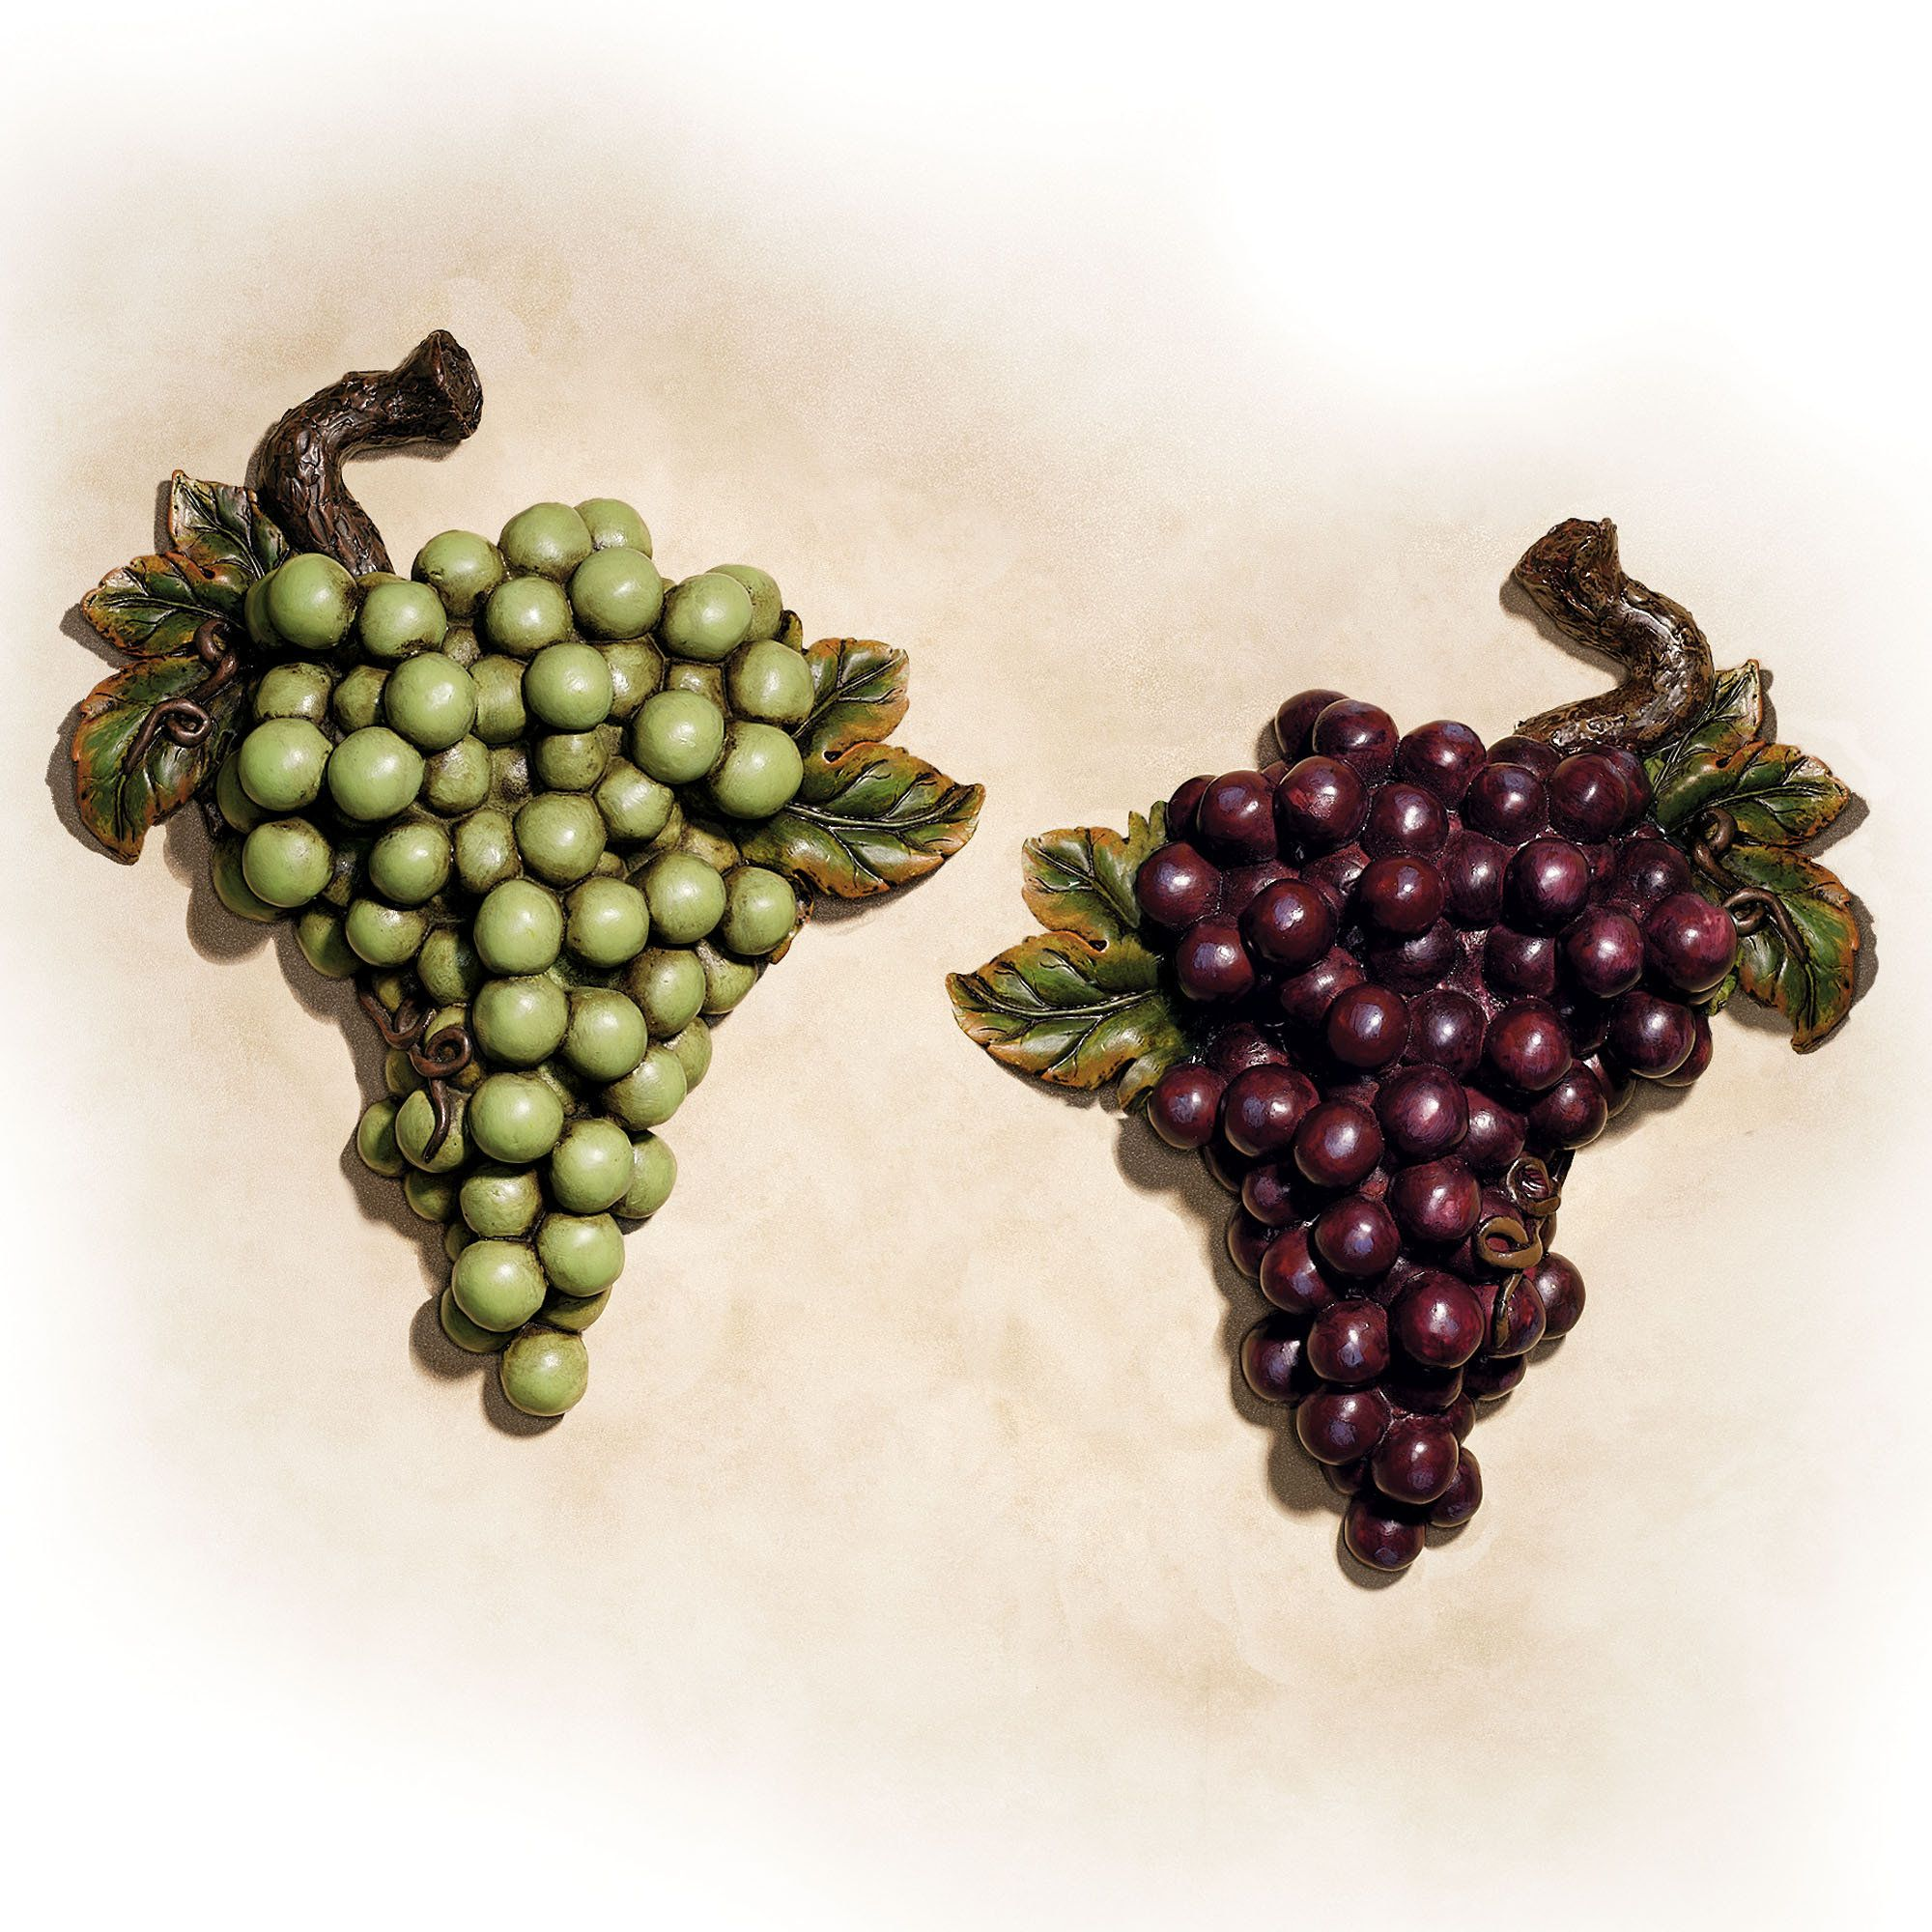 Bountiful Grapes Wall Accent Set | Wall accents, Walls and Kitchens